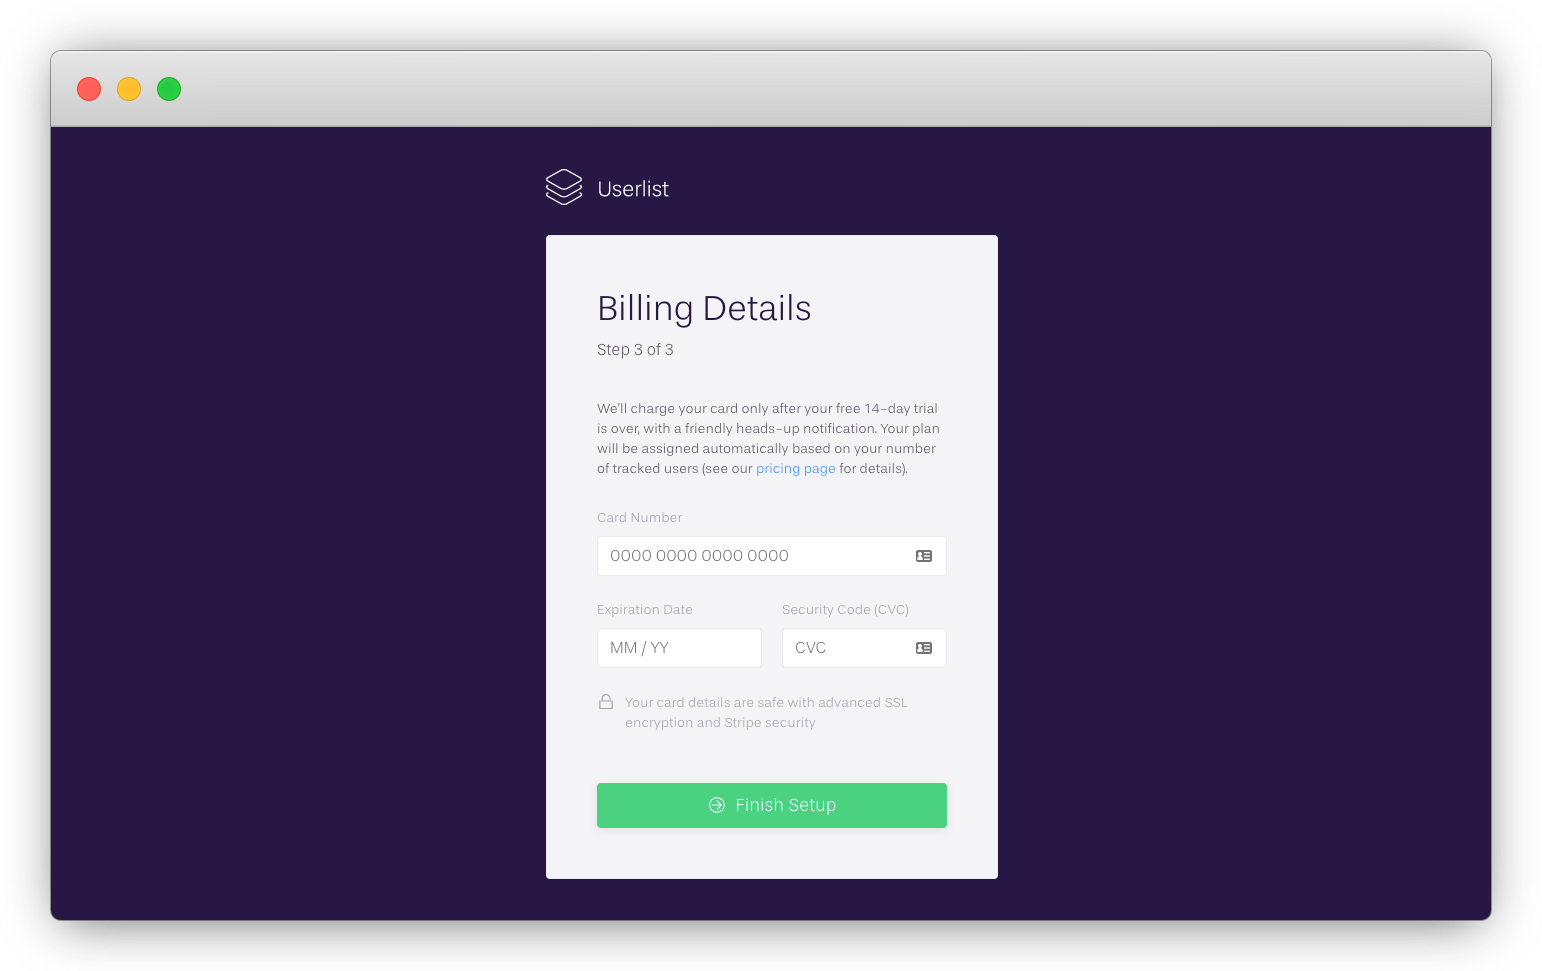 Userlist's final step of signup process